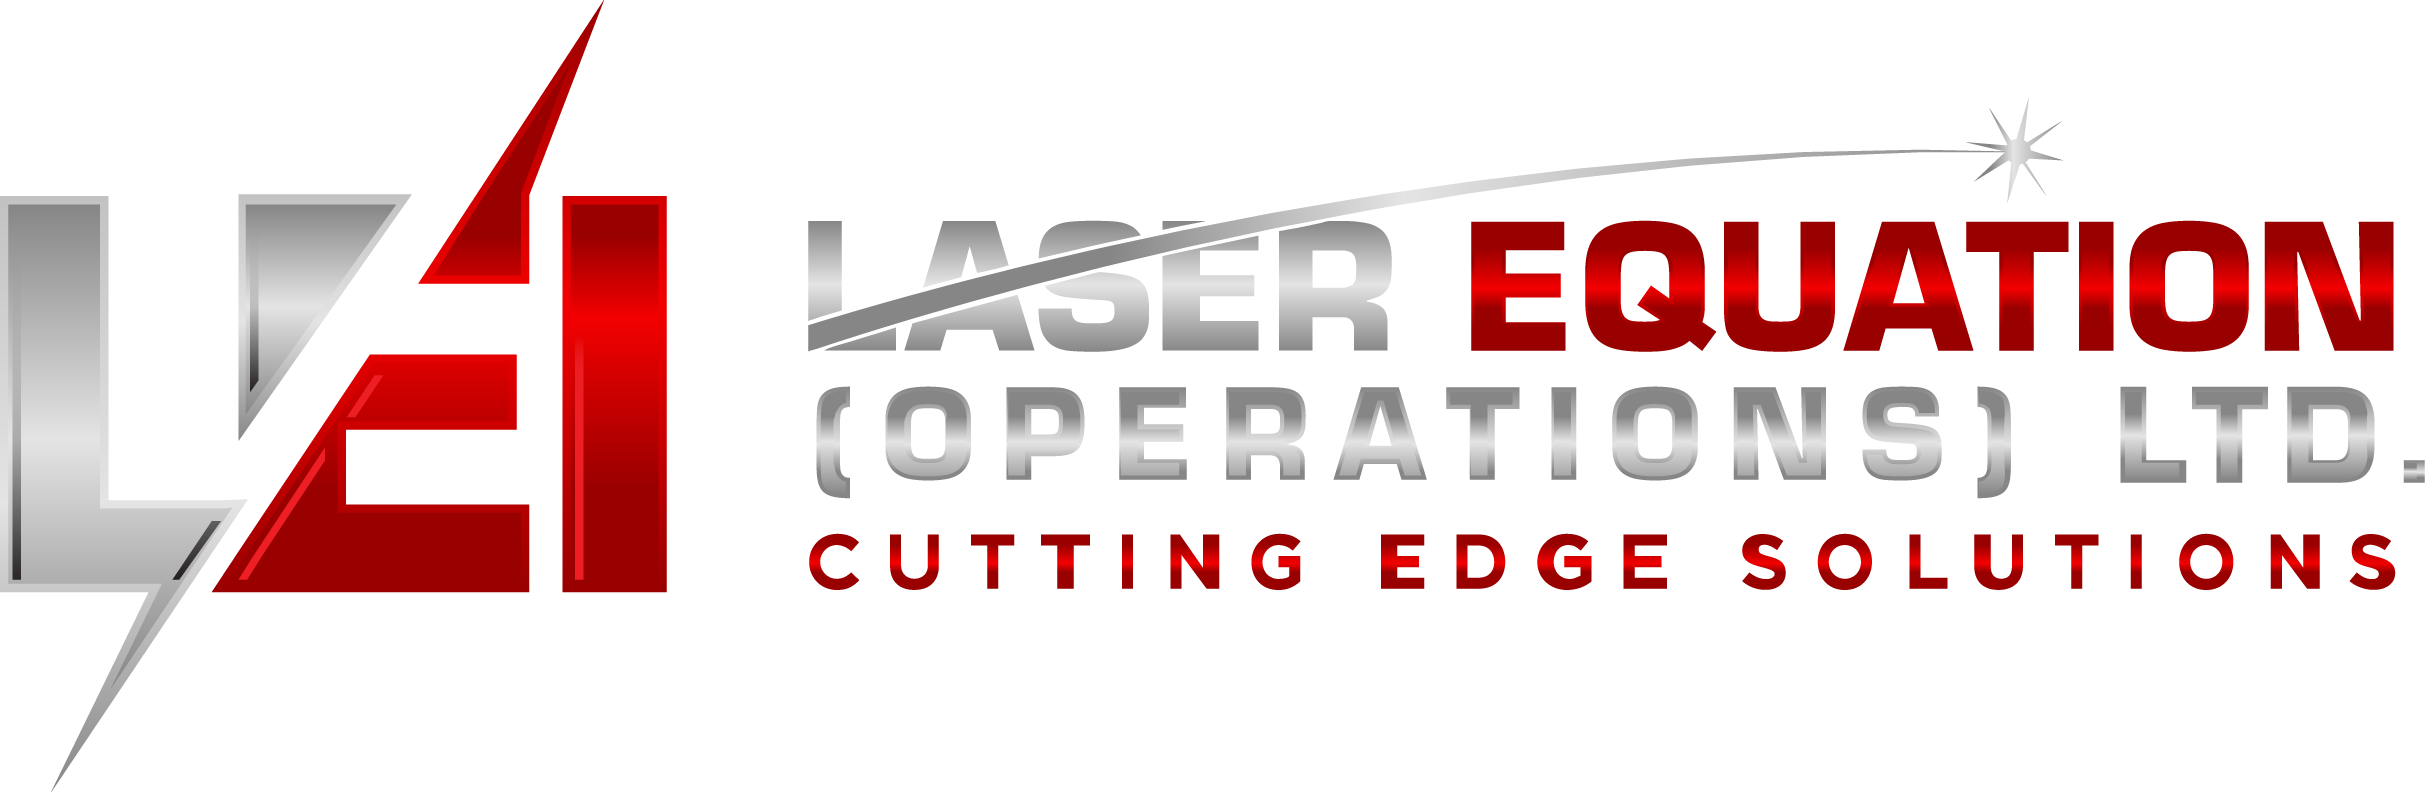 Laser Equation (Operations) Ltd.